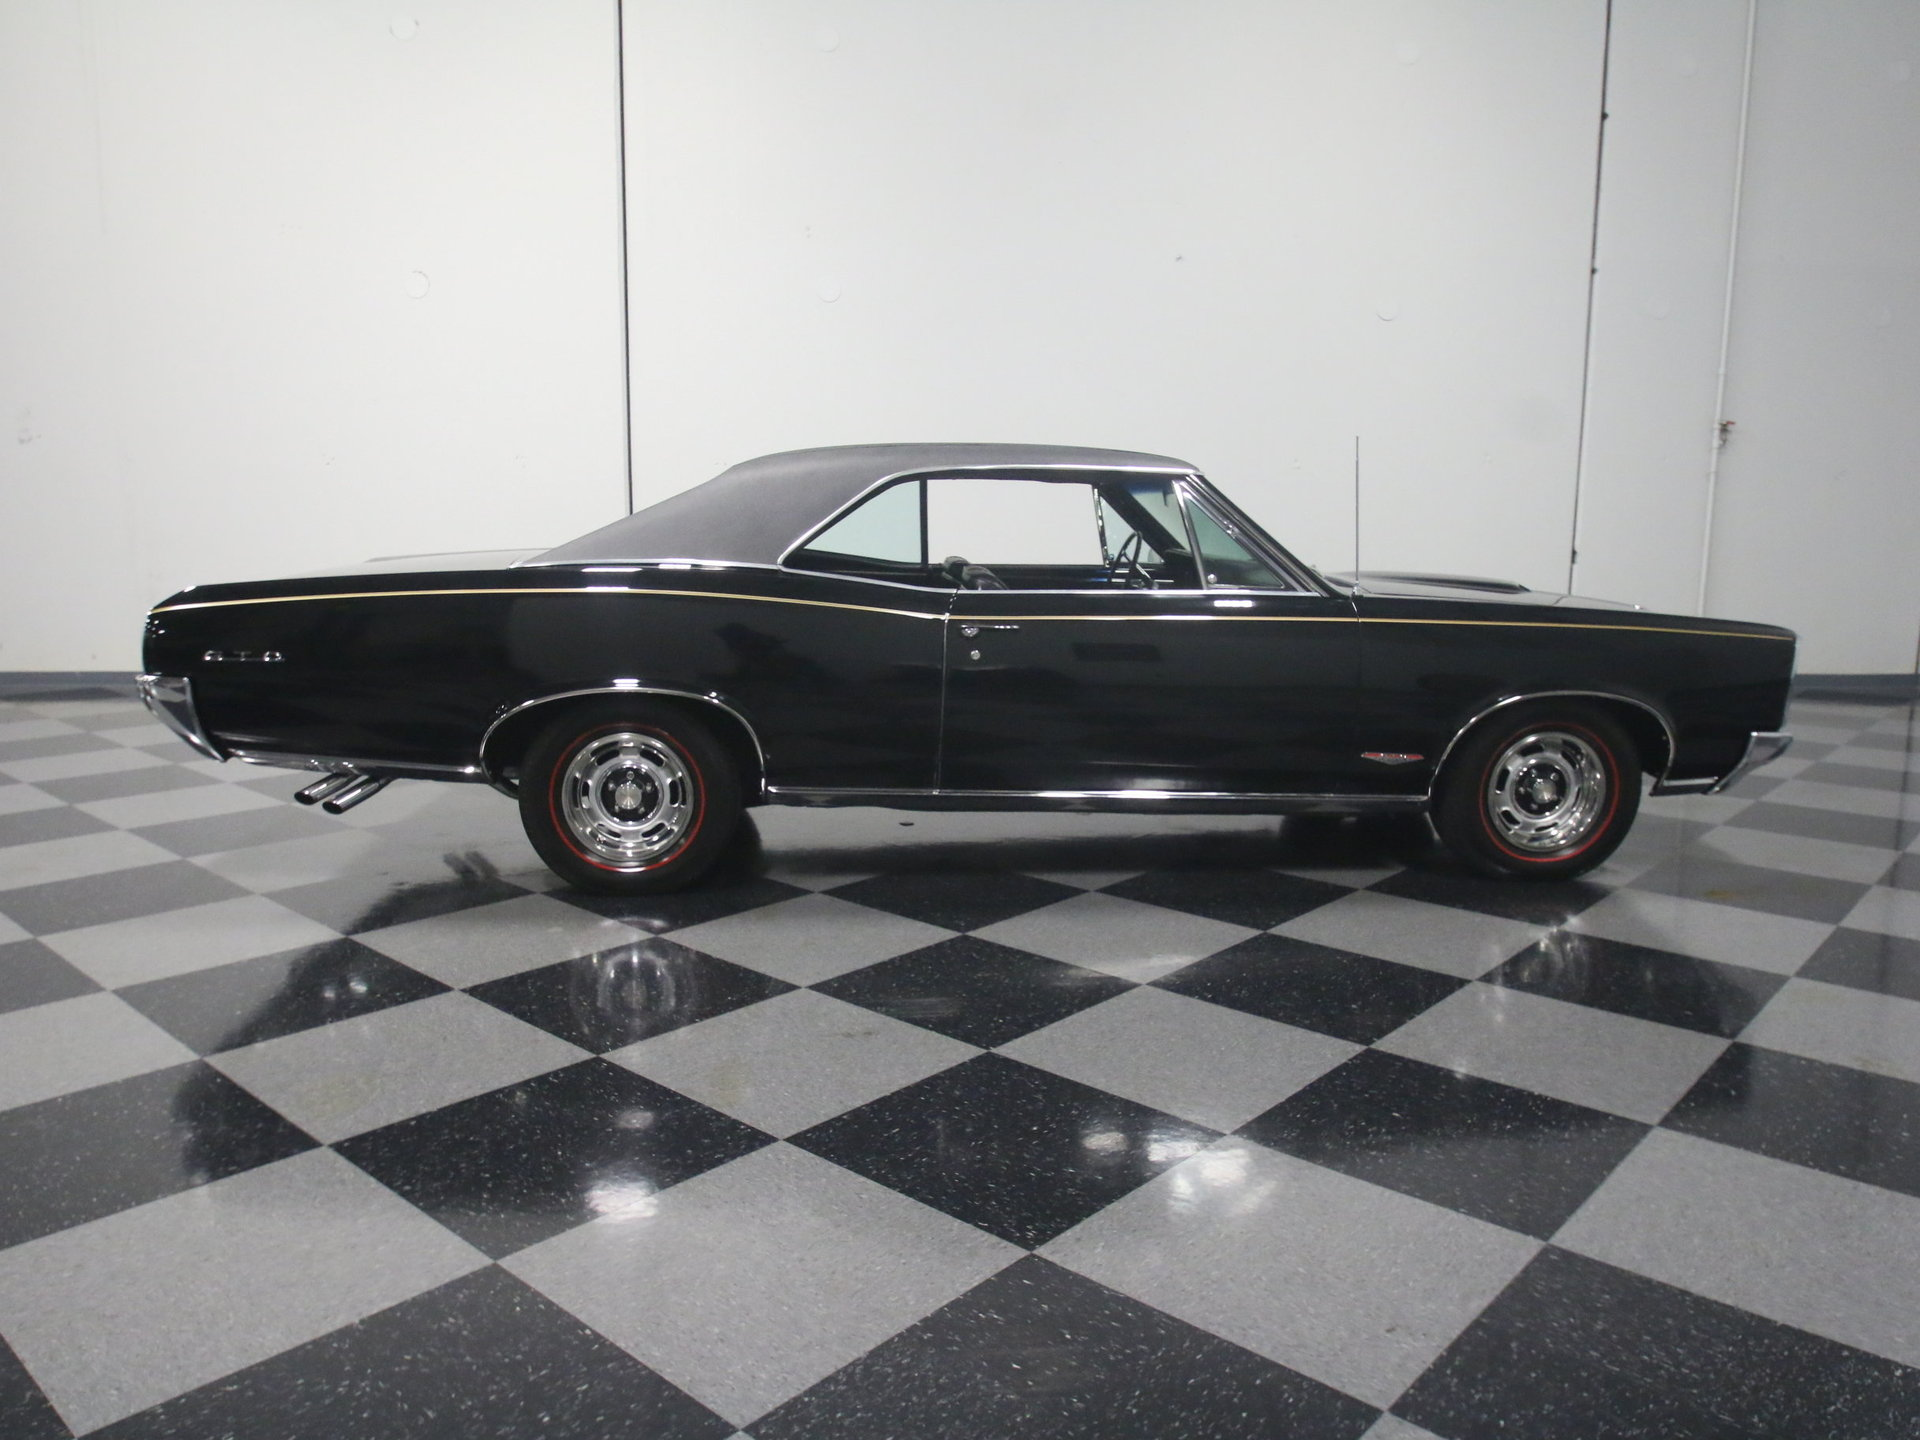 1966 Pontiac Gto For Sale 73088 Mcg 1965 Tripower 4speed Starlight Black With